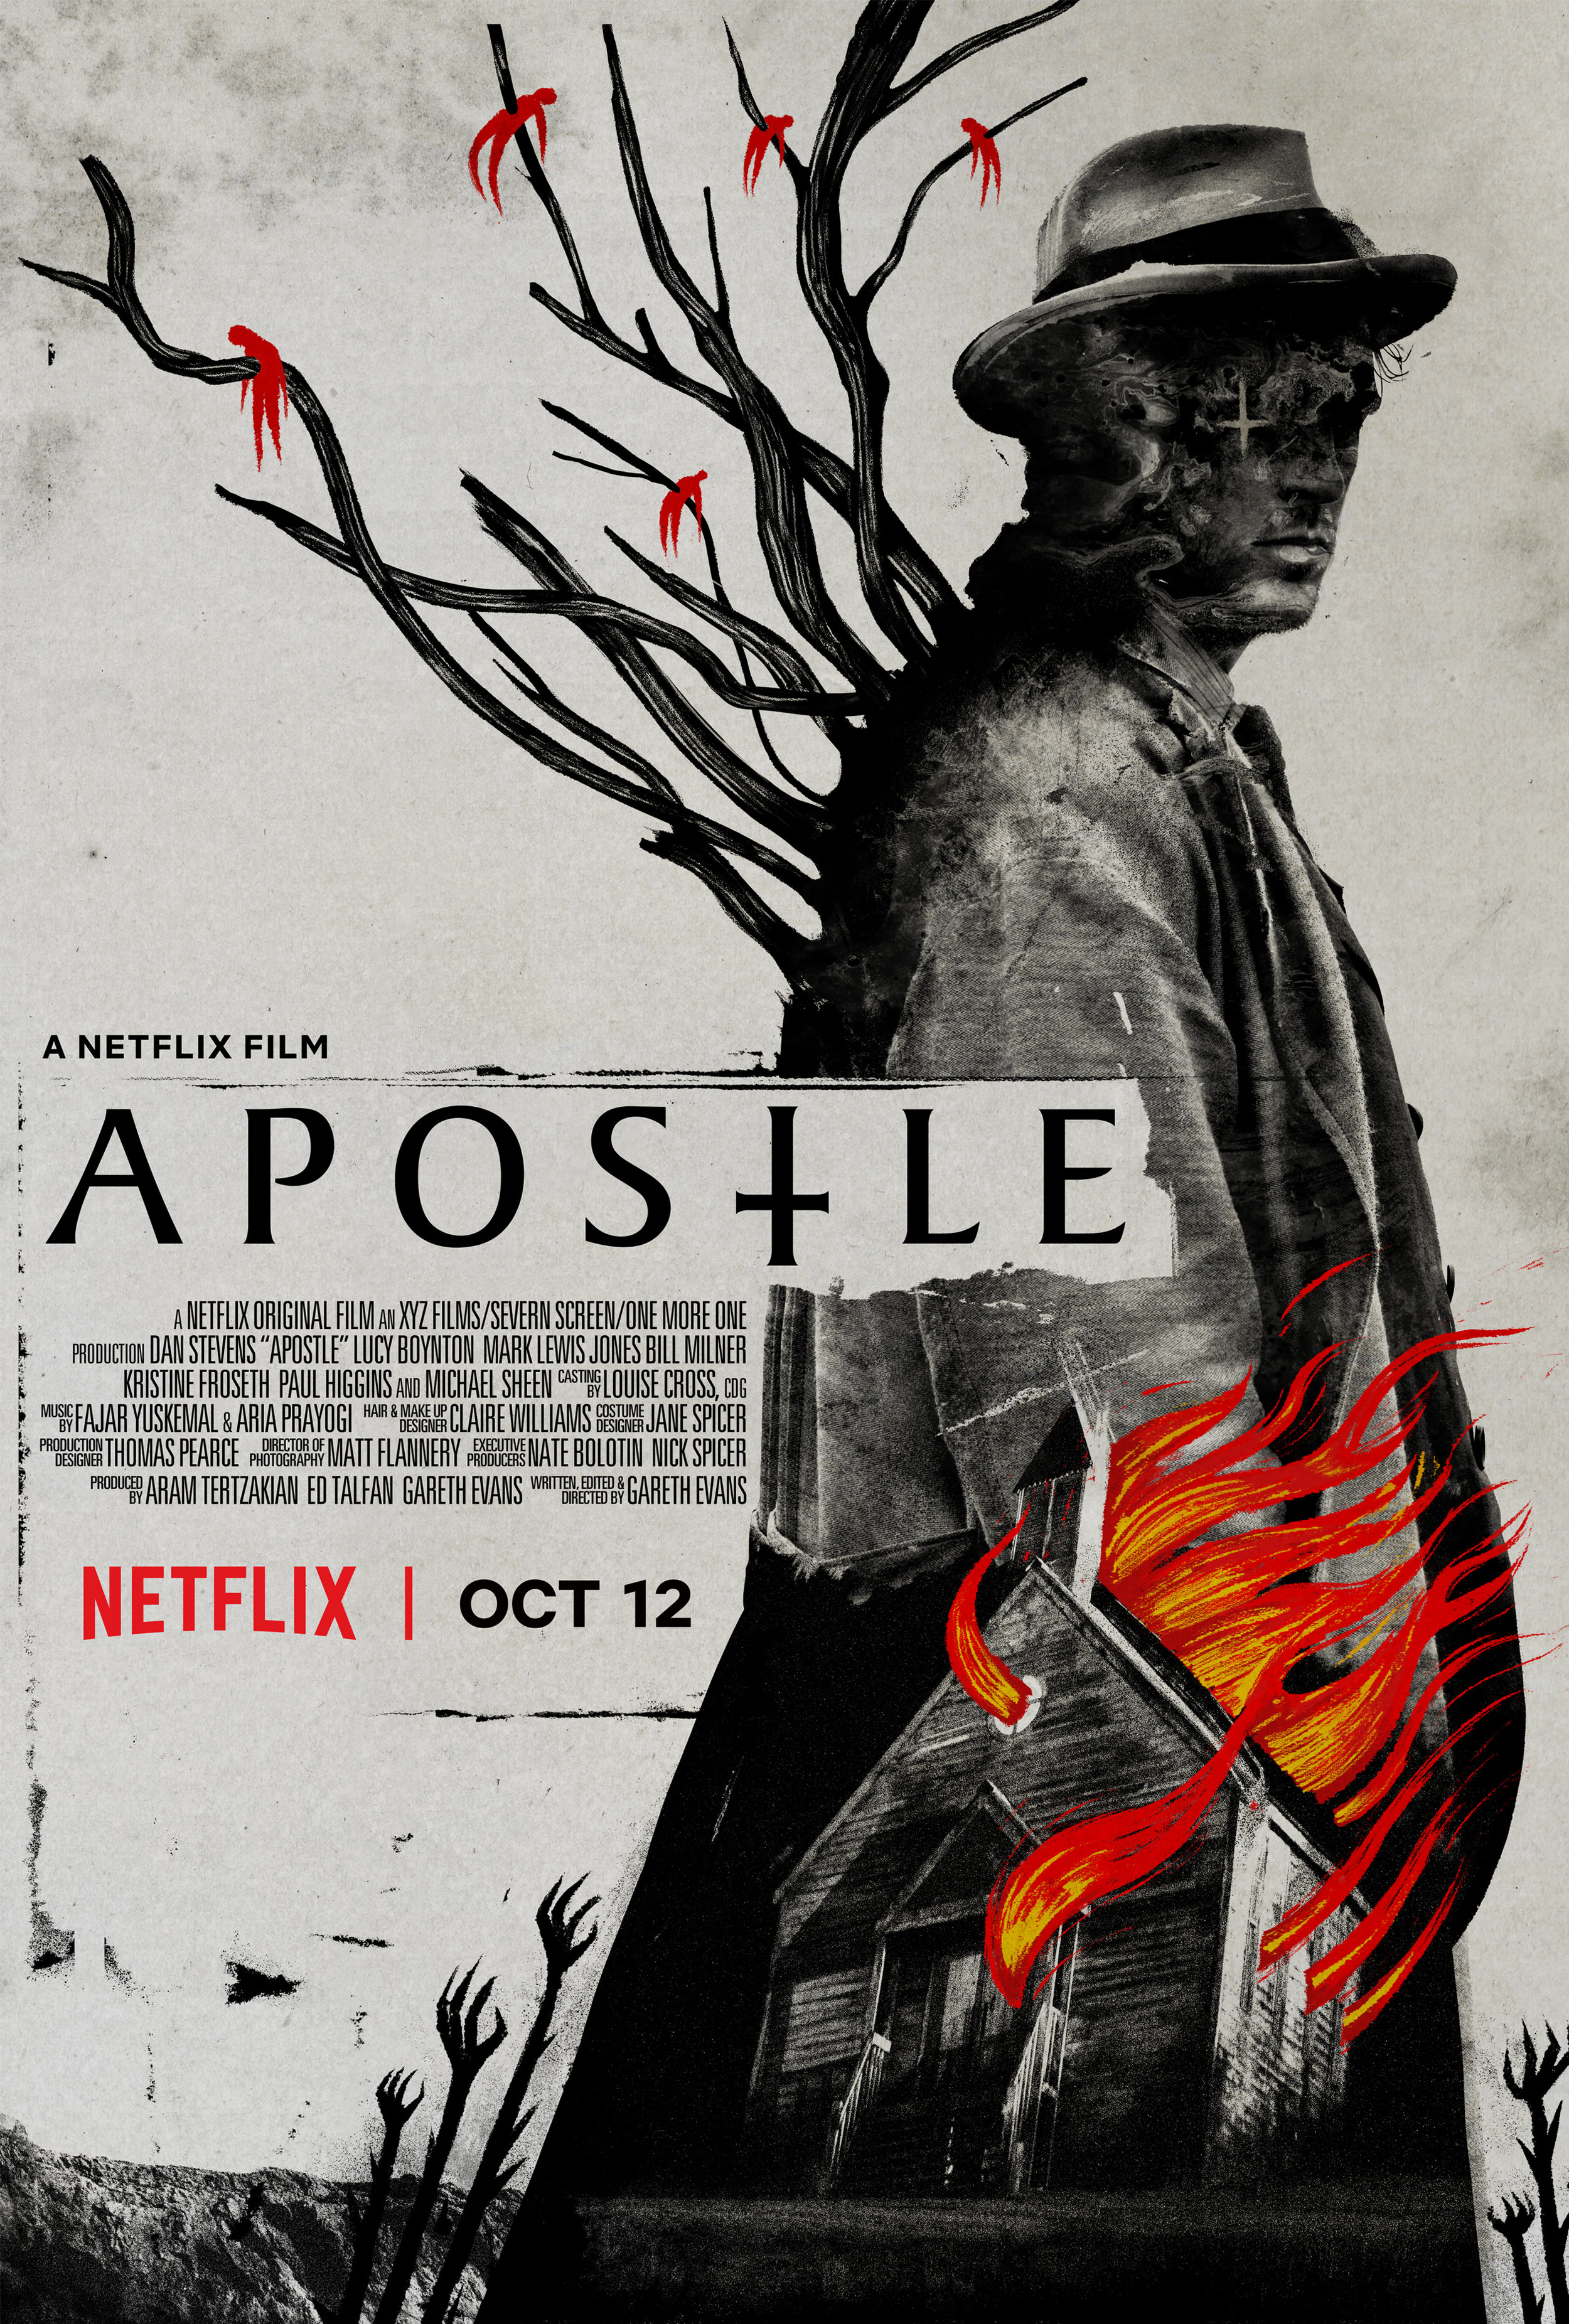 poster-art-for-the-cult-thriller-apostle-and-director-gareth-evans-says-its-not-for-the-squeamish2